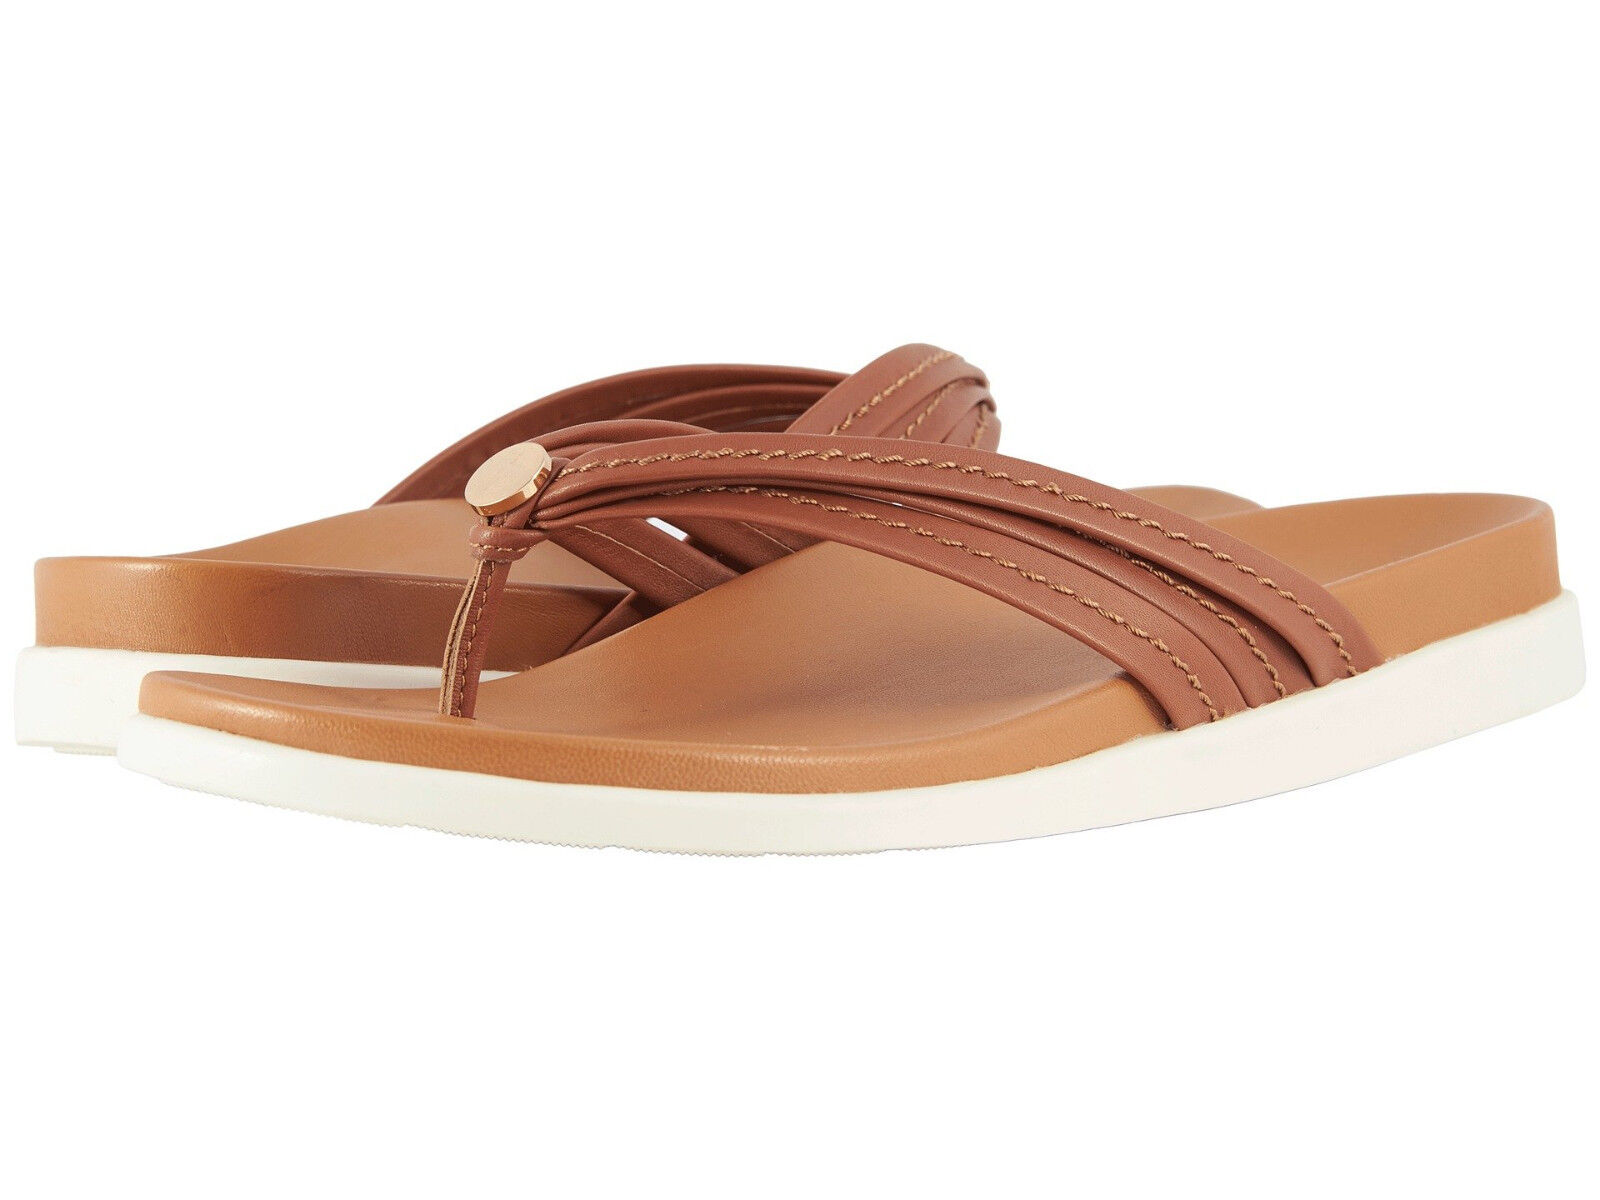 donna Vionic Catalina Flipflop Sandal Palm Catalina Tan Tan Tan 100% Authentic New 437d12